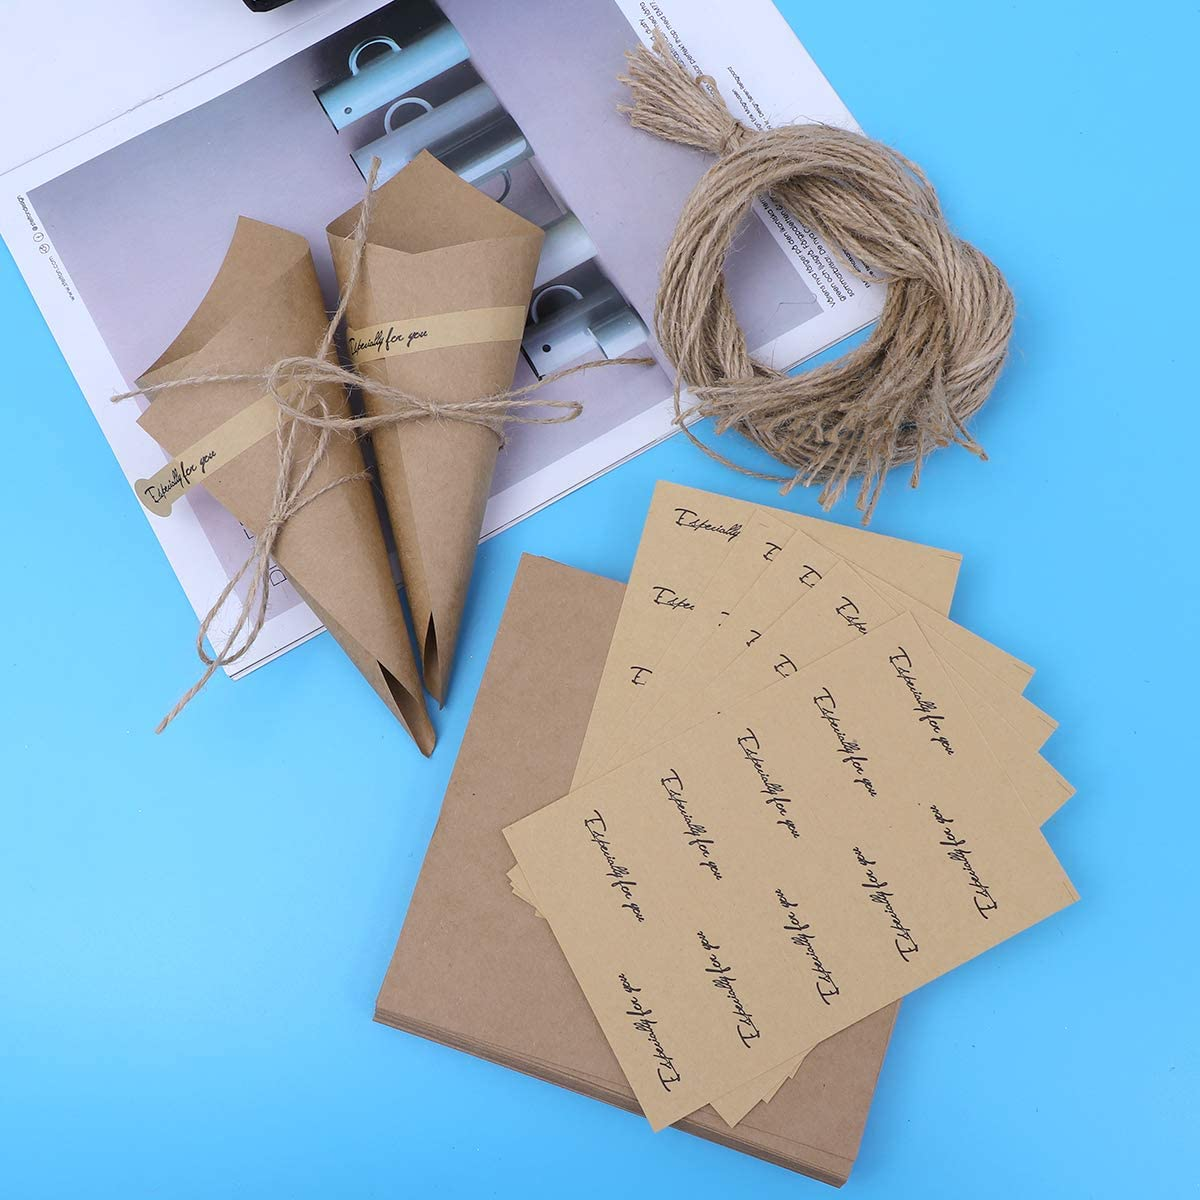 Amosfun 50pcs Diy Wedding Confetti Cones Retro Kraft Paper Cones Bouquet Candy Chocolate Bags Boxes Wedding Party Favour Gifts Packing Black